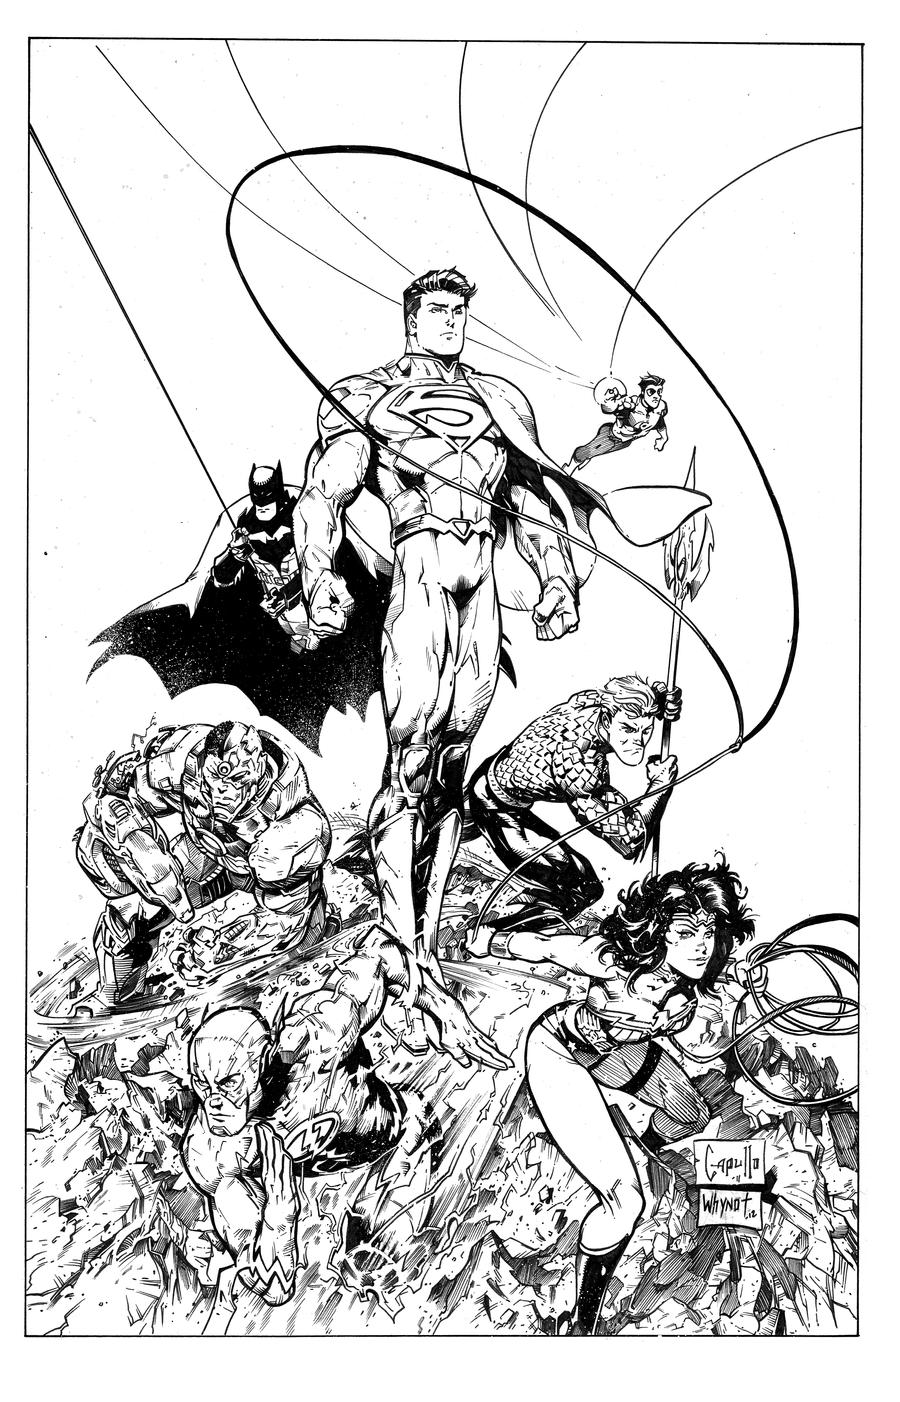 jla justice league coloring pages | Justice League Cover by JamesWhynotInks on DeviantArt